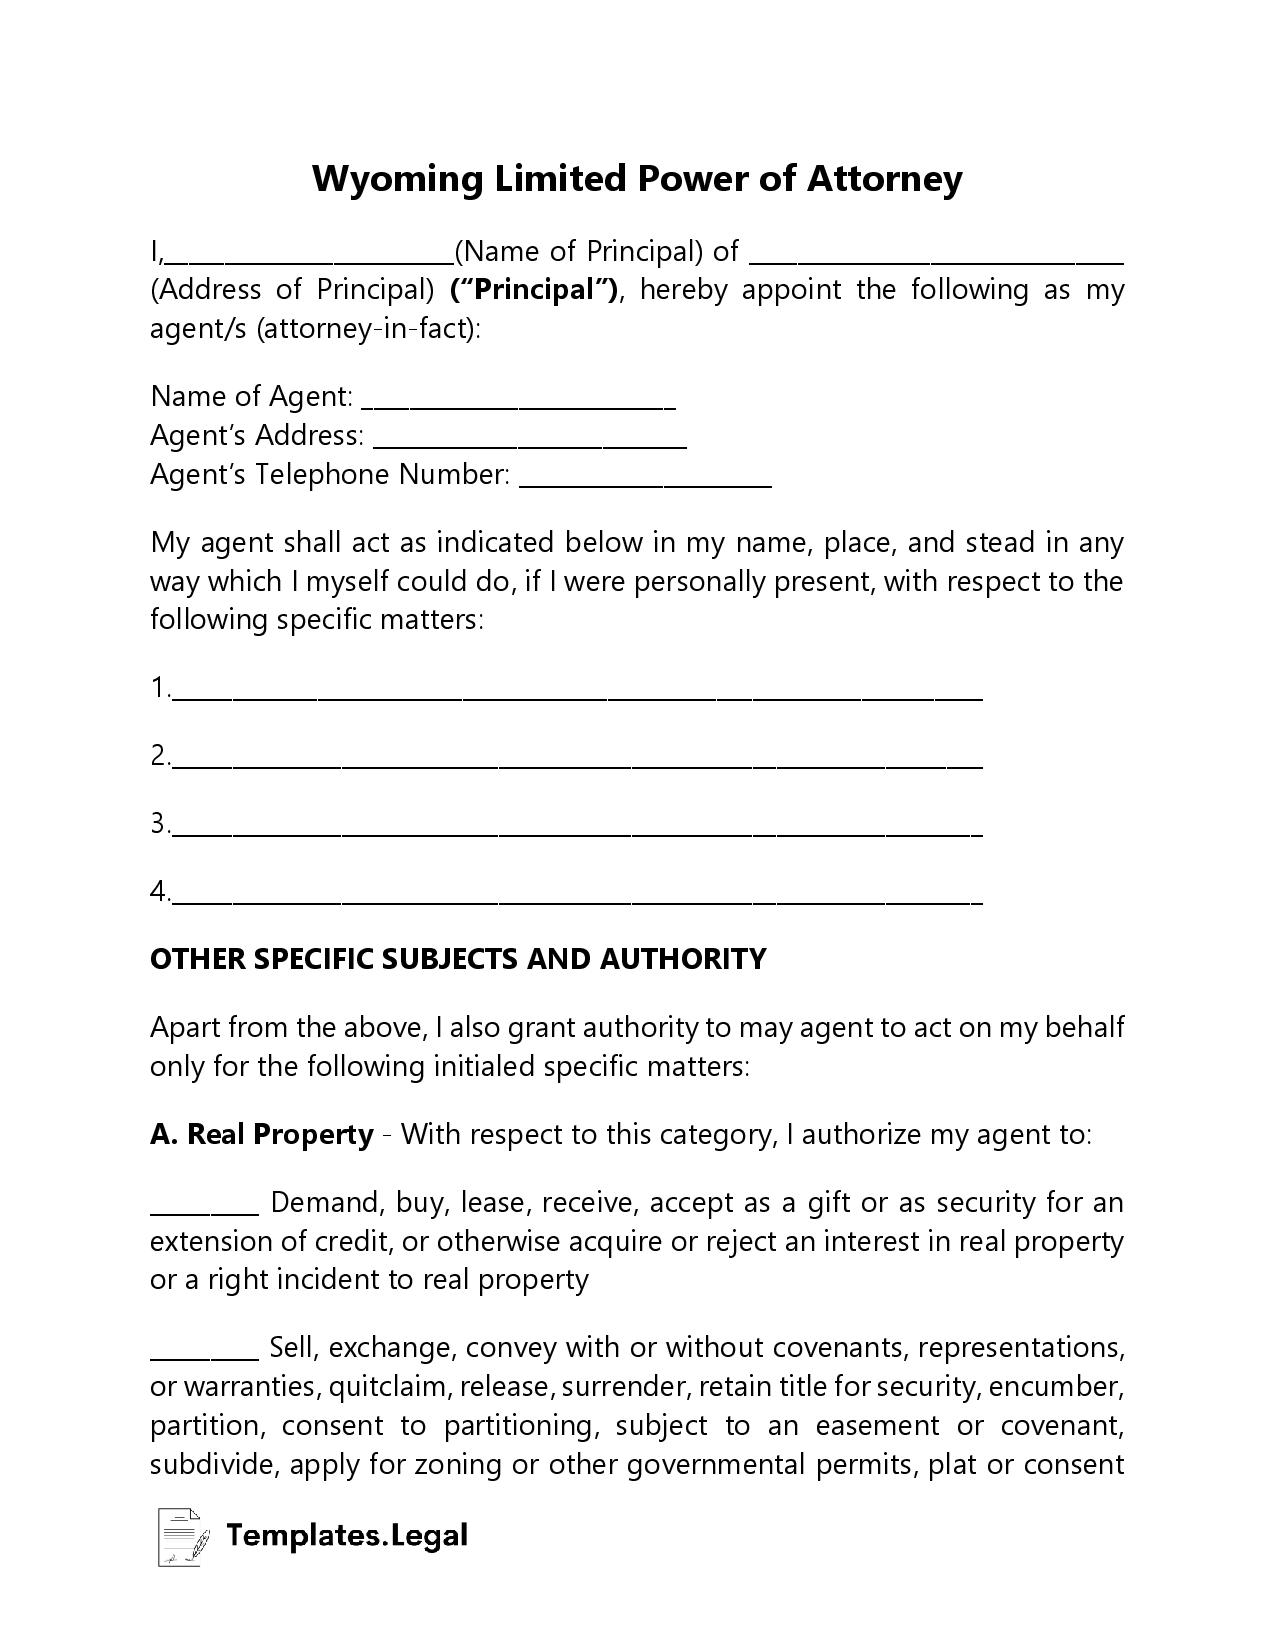 Wyoming Limited Power of Attorney - Templates.Legal